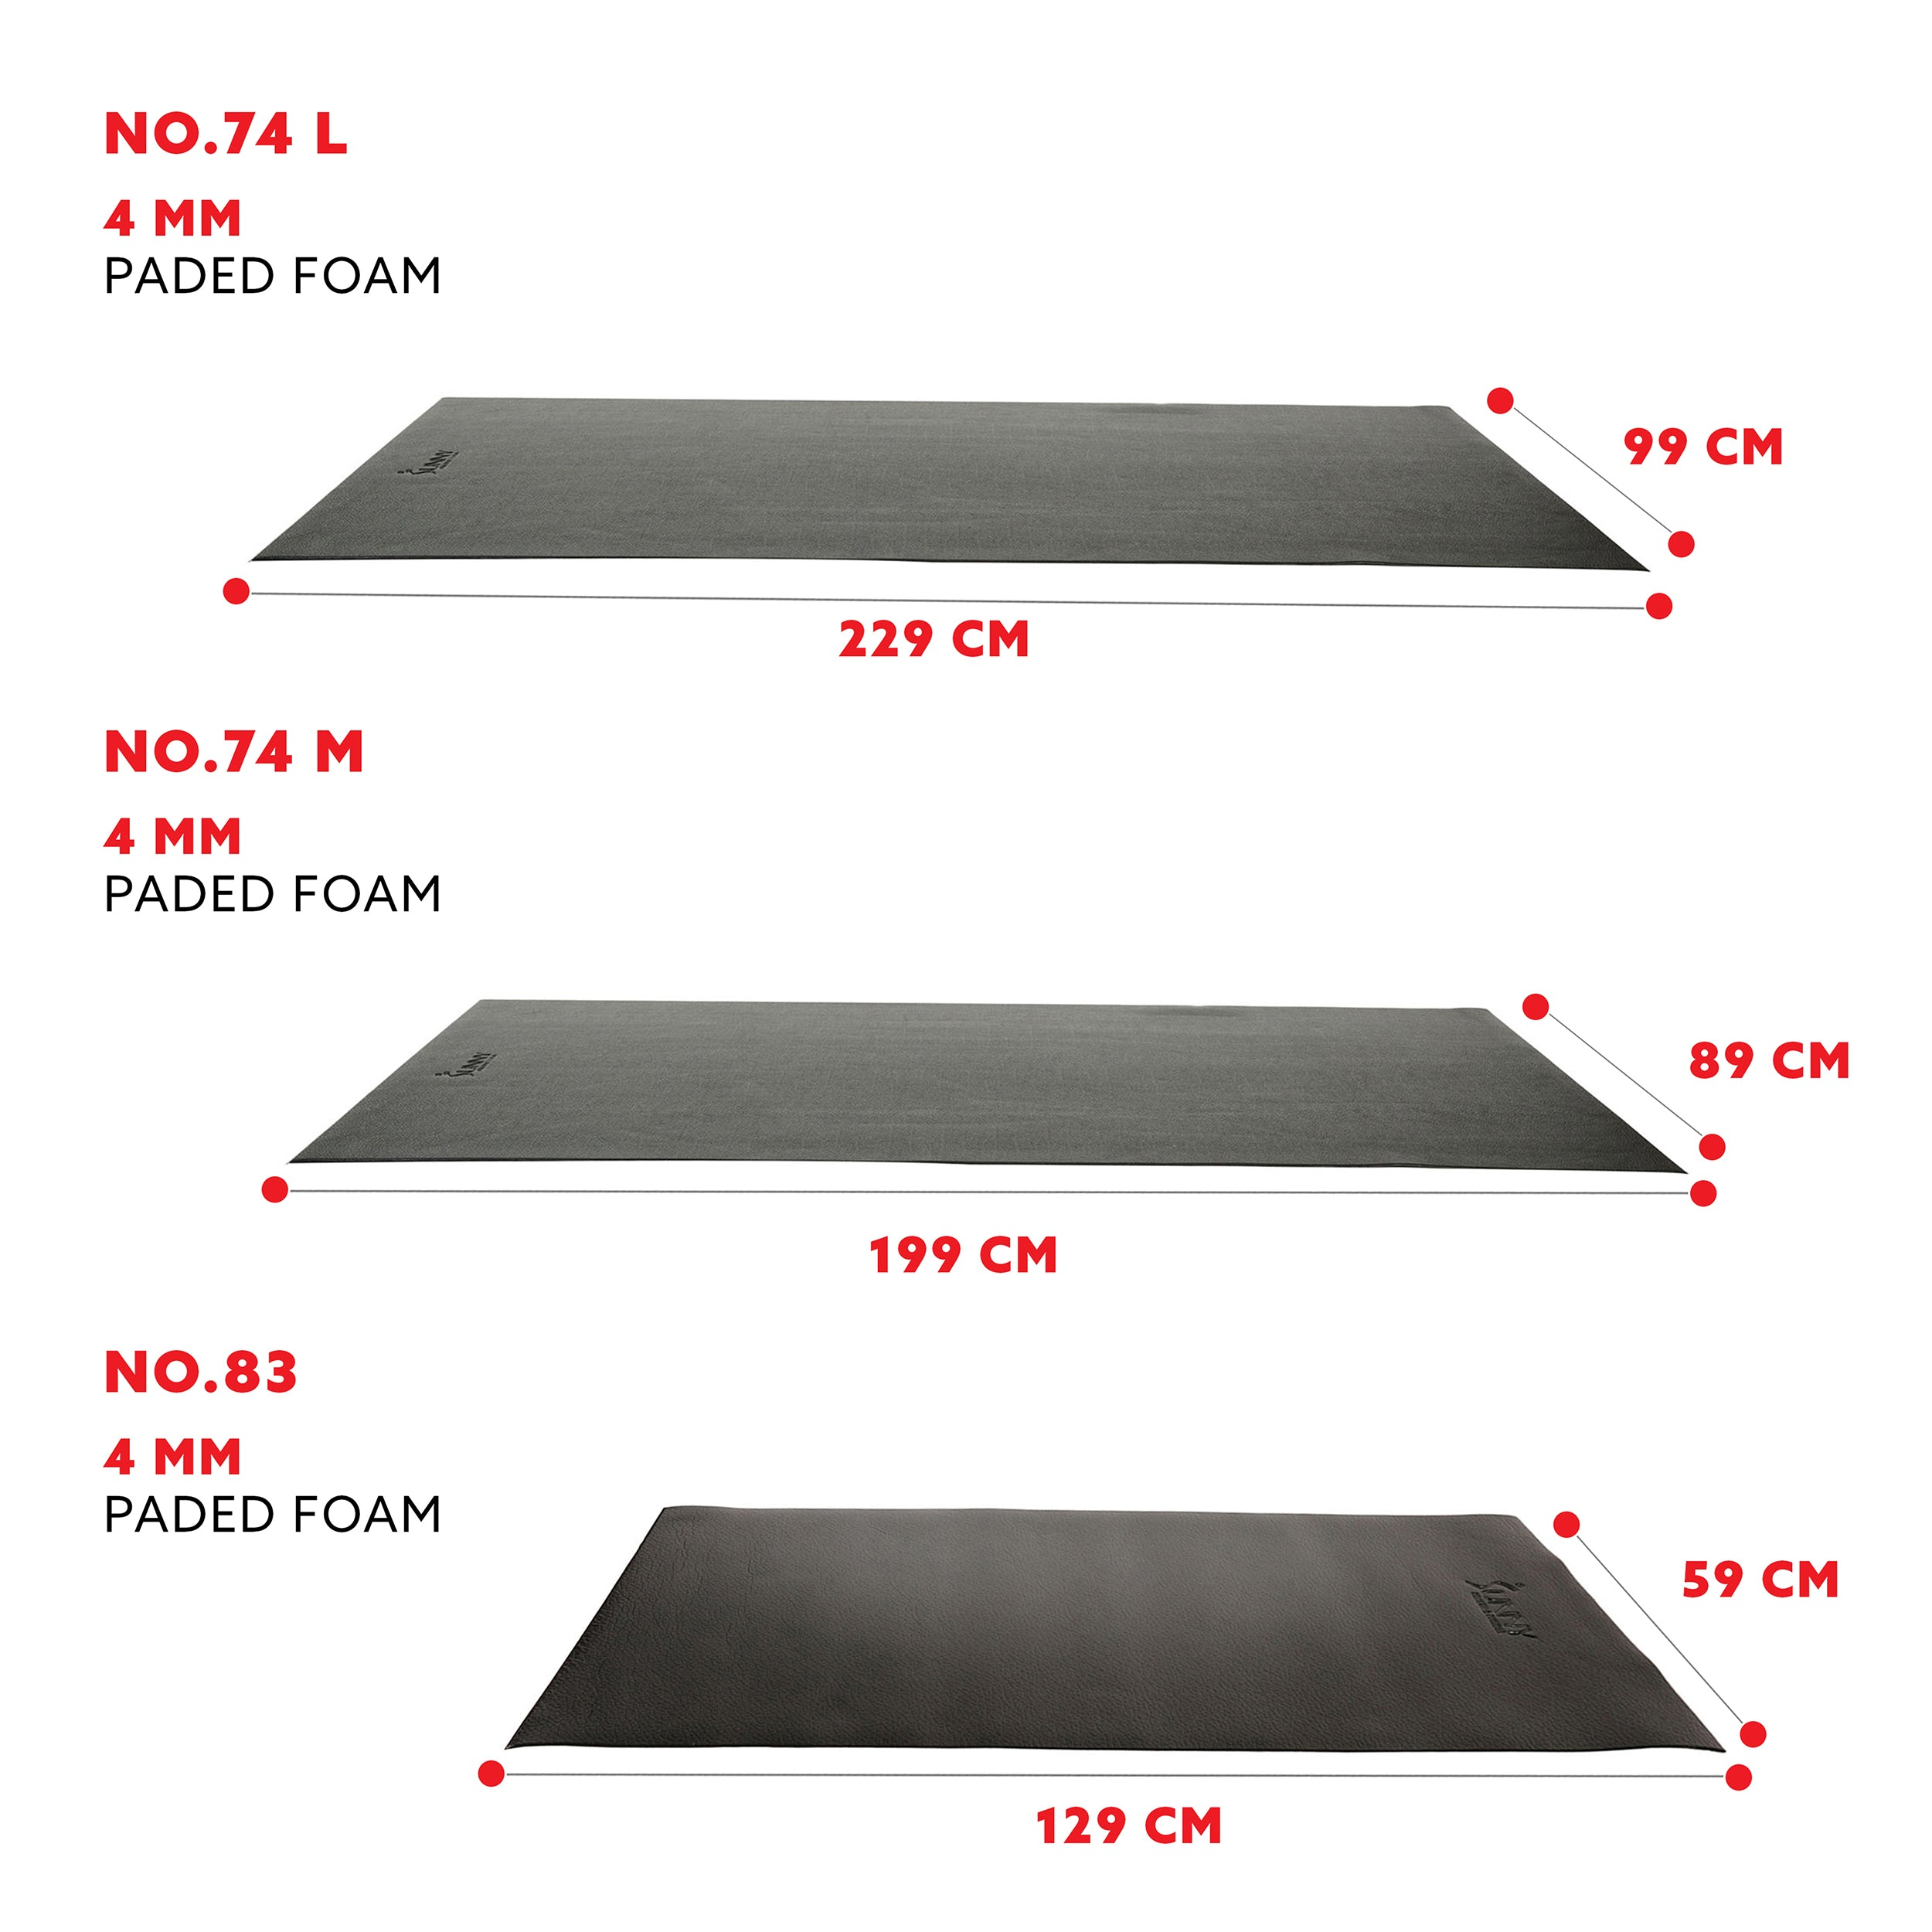 sunny-health-fitness-accessories-fitness-mat-large-No.074-L-No.083-comparisons-METRIC1.jpg